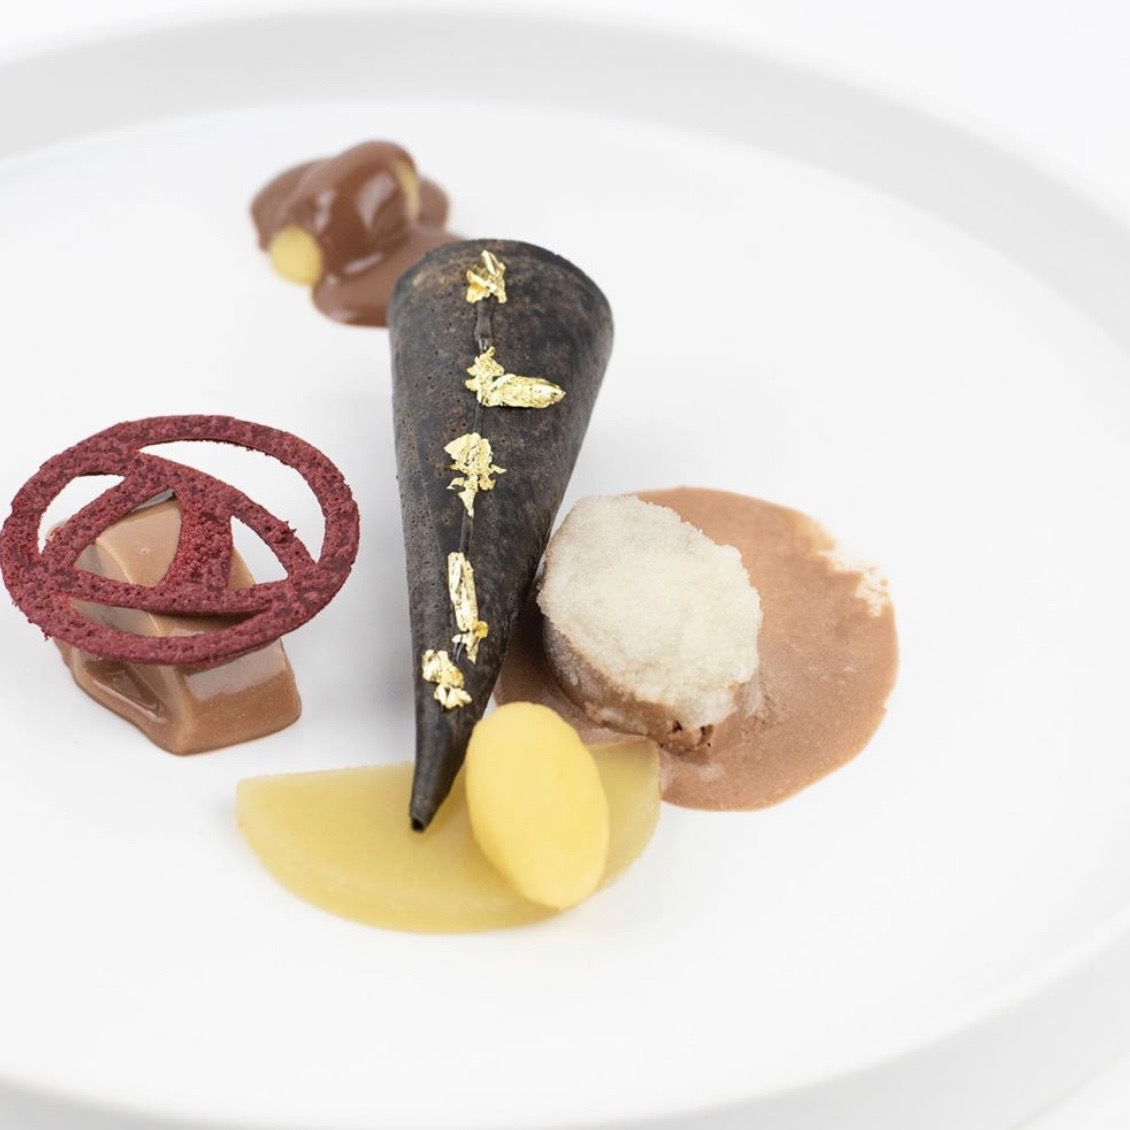 VALRHONA C3 THE ROSE OF THE LITTLE PRINCE